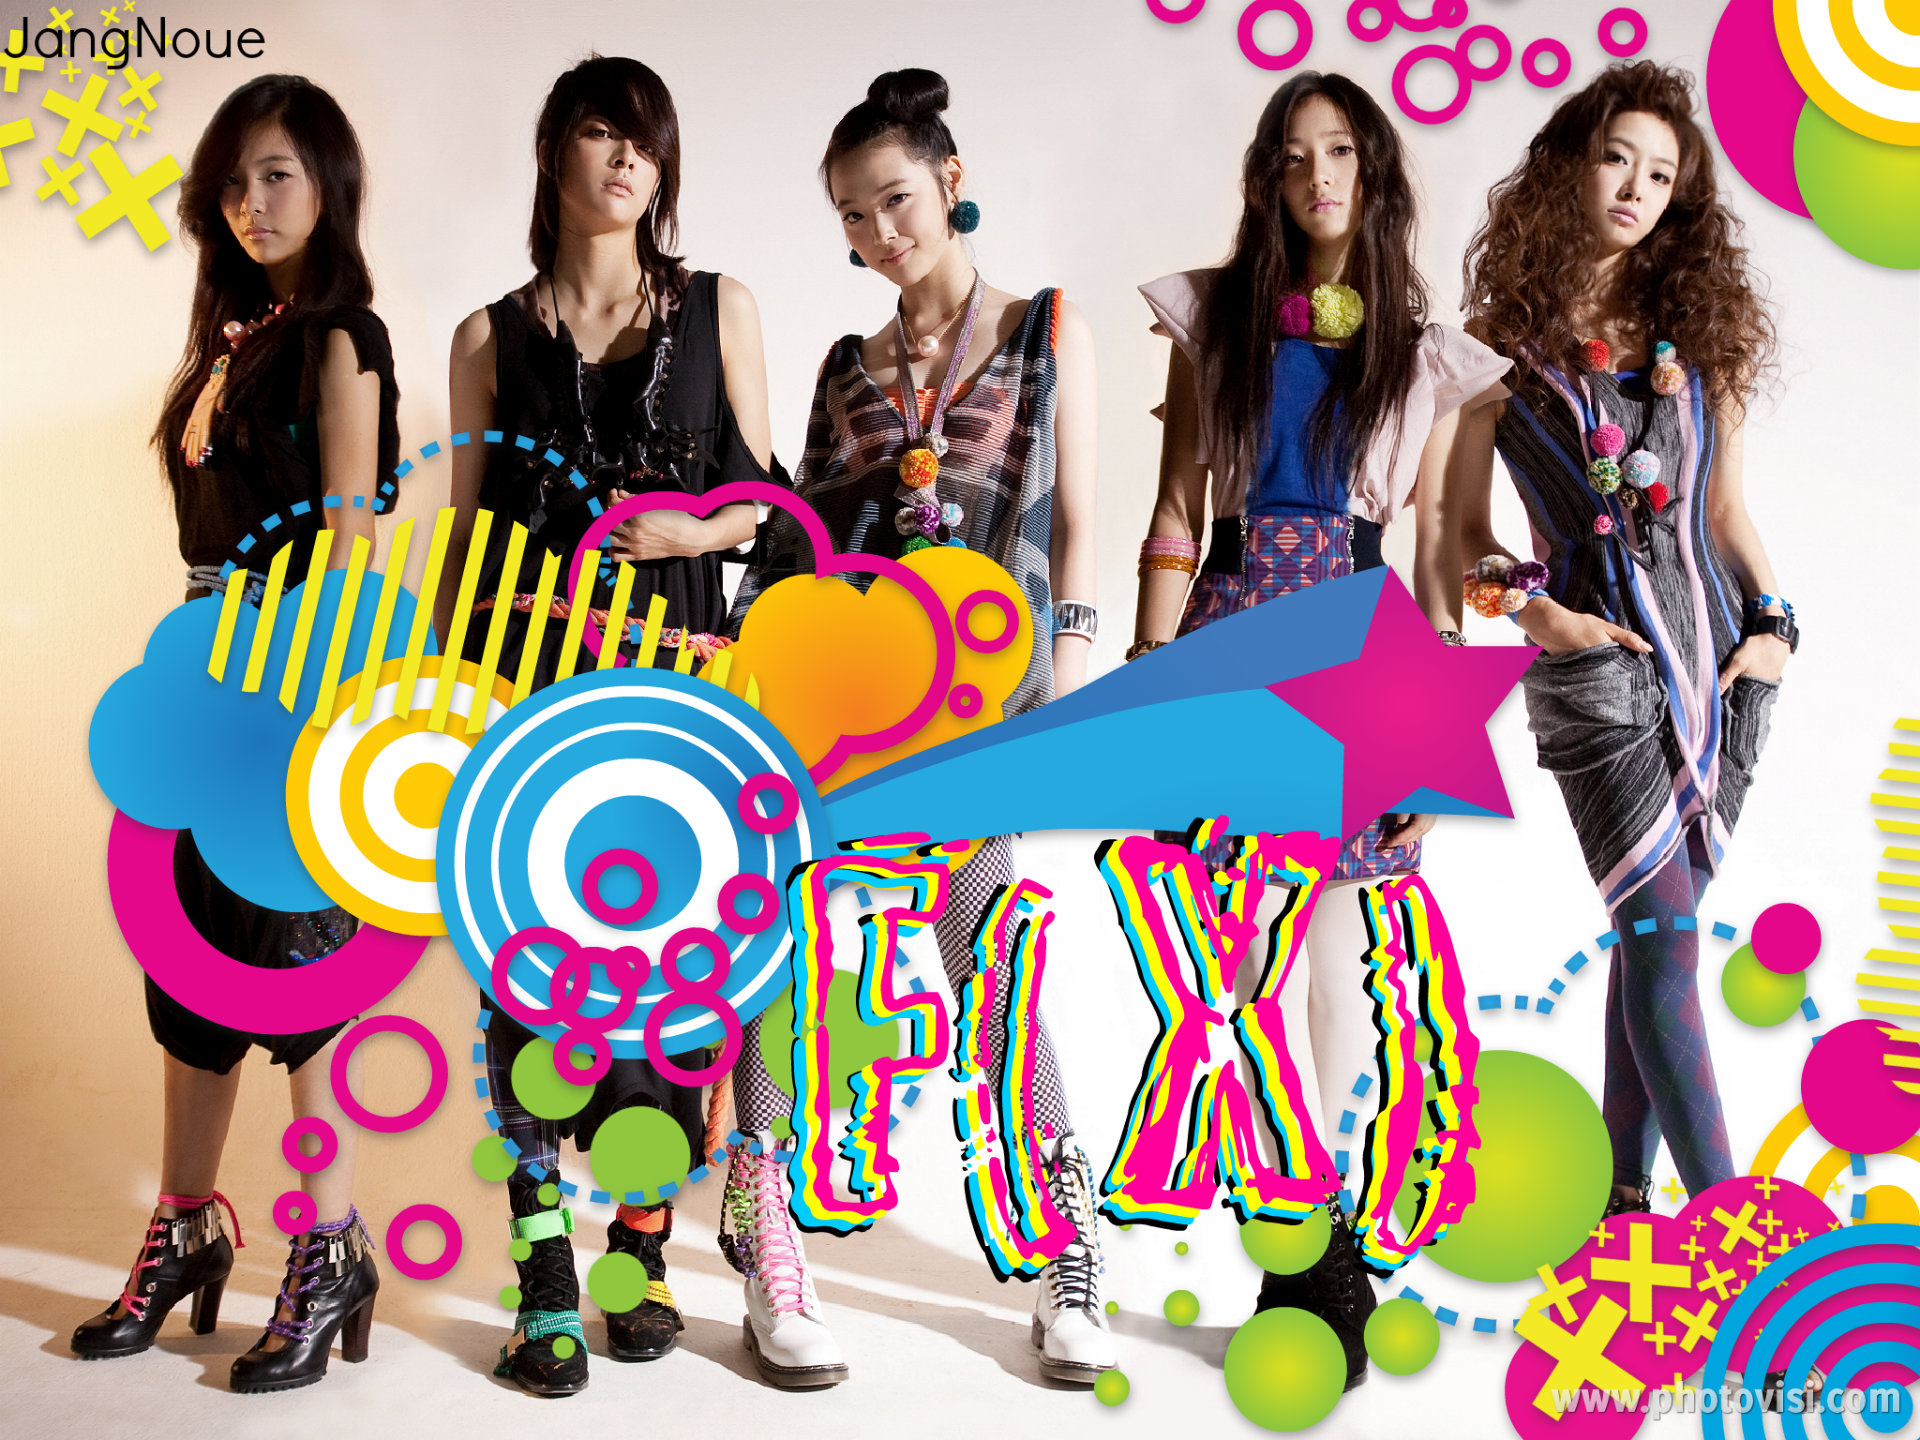 F x latest news